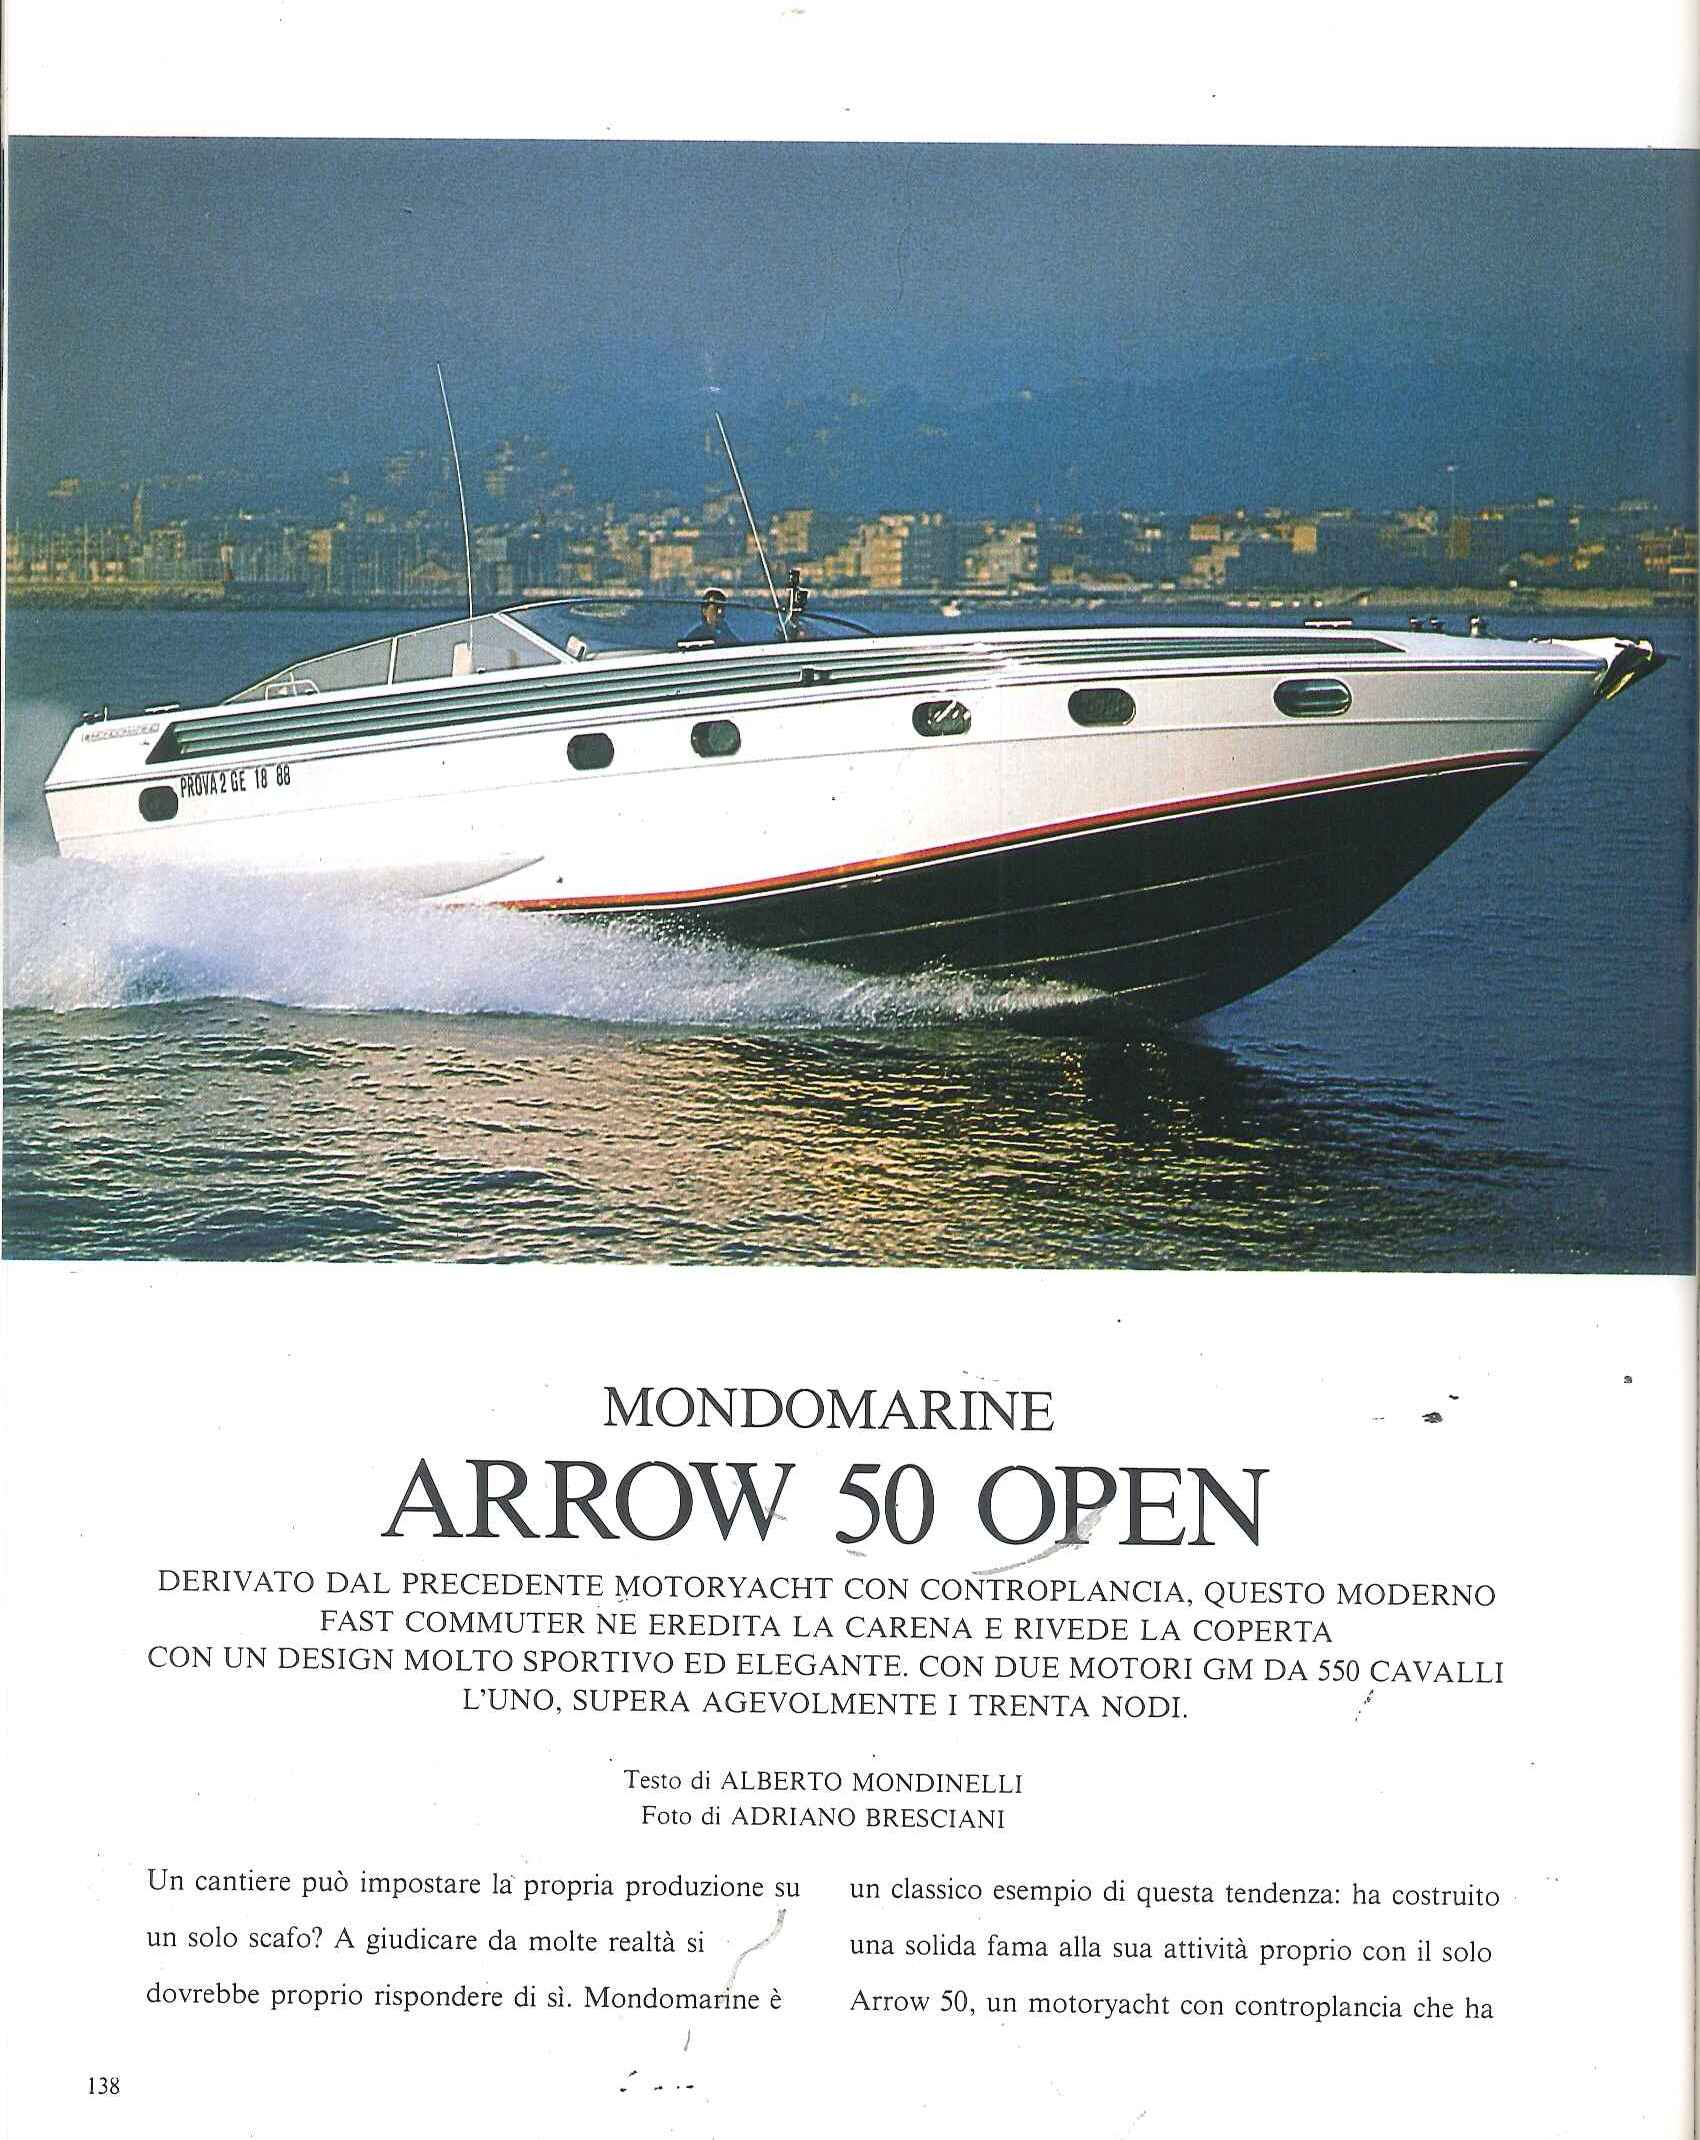 1989 04 PRESS ARROW 50 UOMO MARE 129 (01).jpg